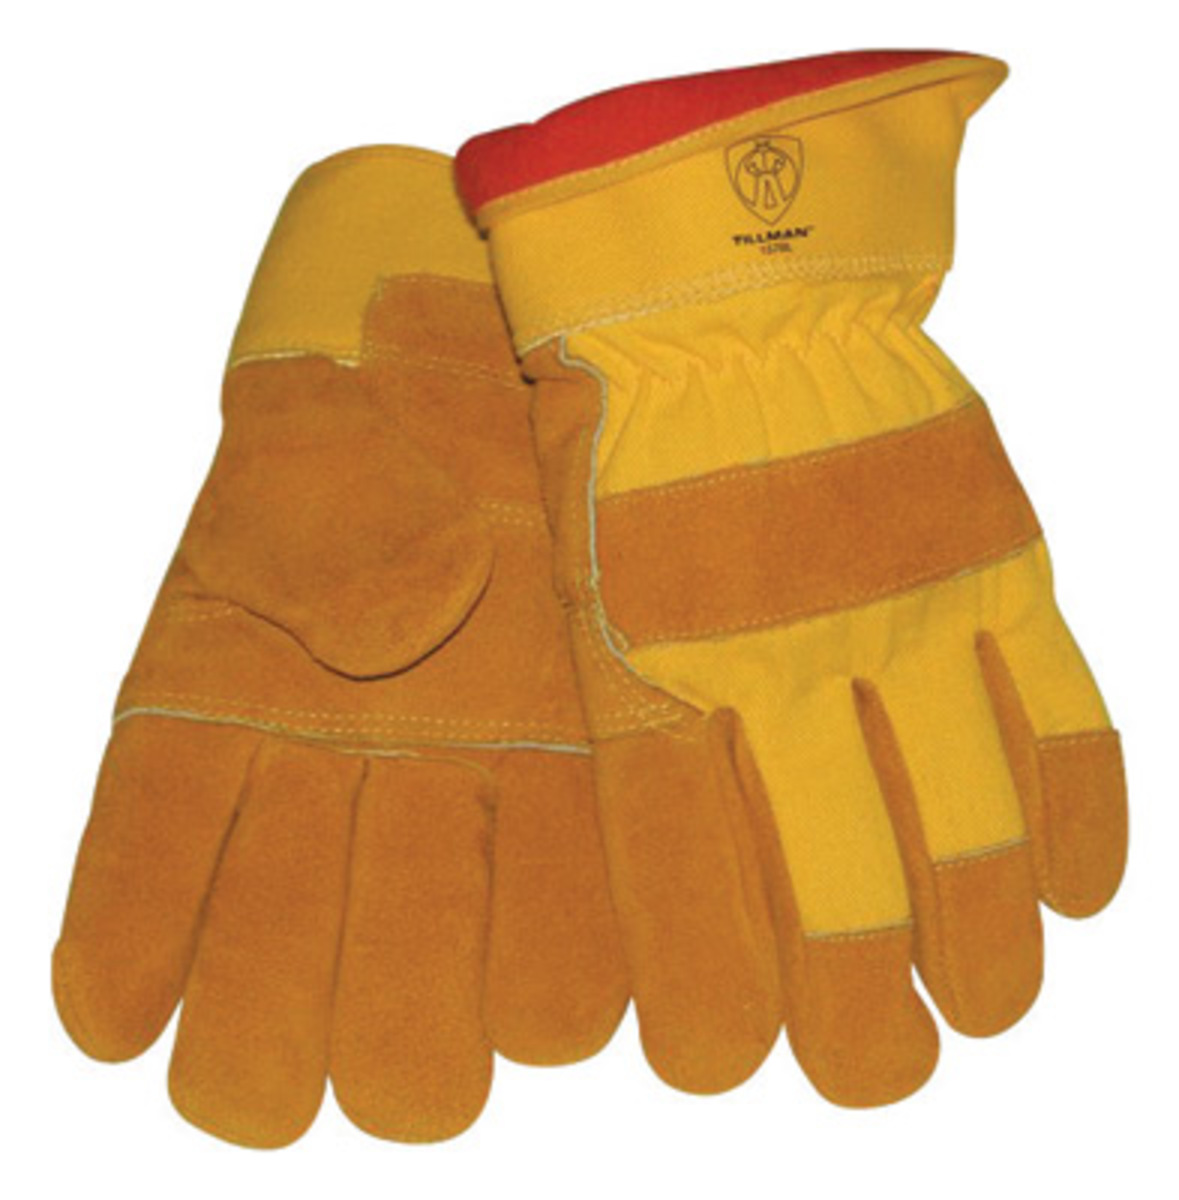 Leather work gloves with thinsulate lining - Wolverine Leather Work Gloves Extra Large Deerskin Thinsulate Lined